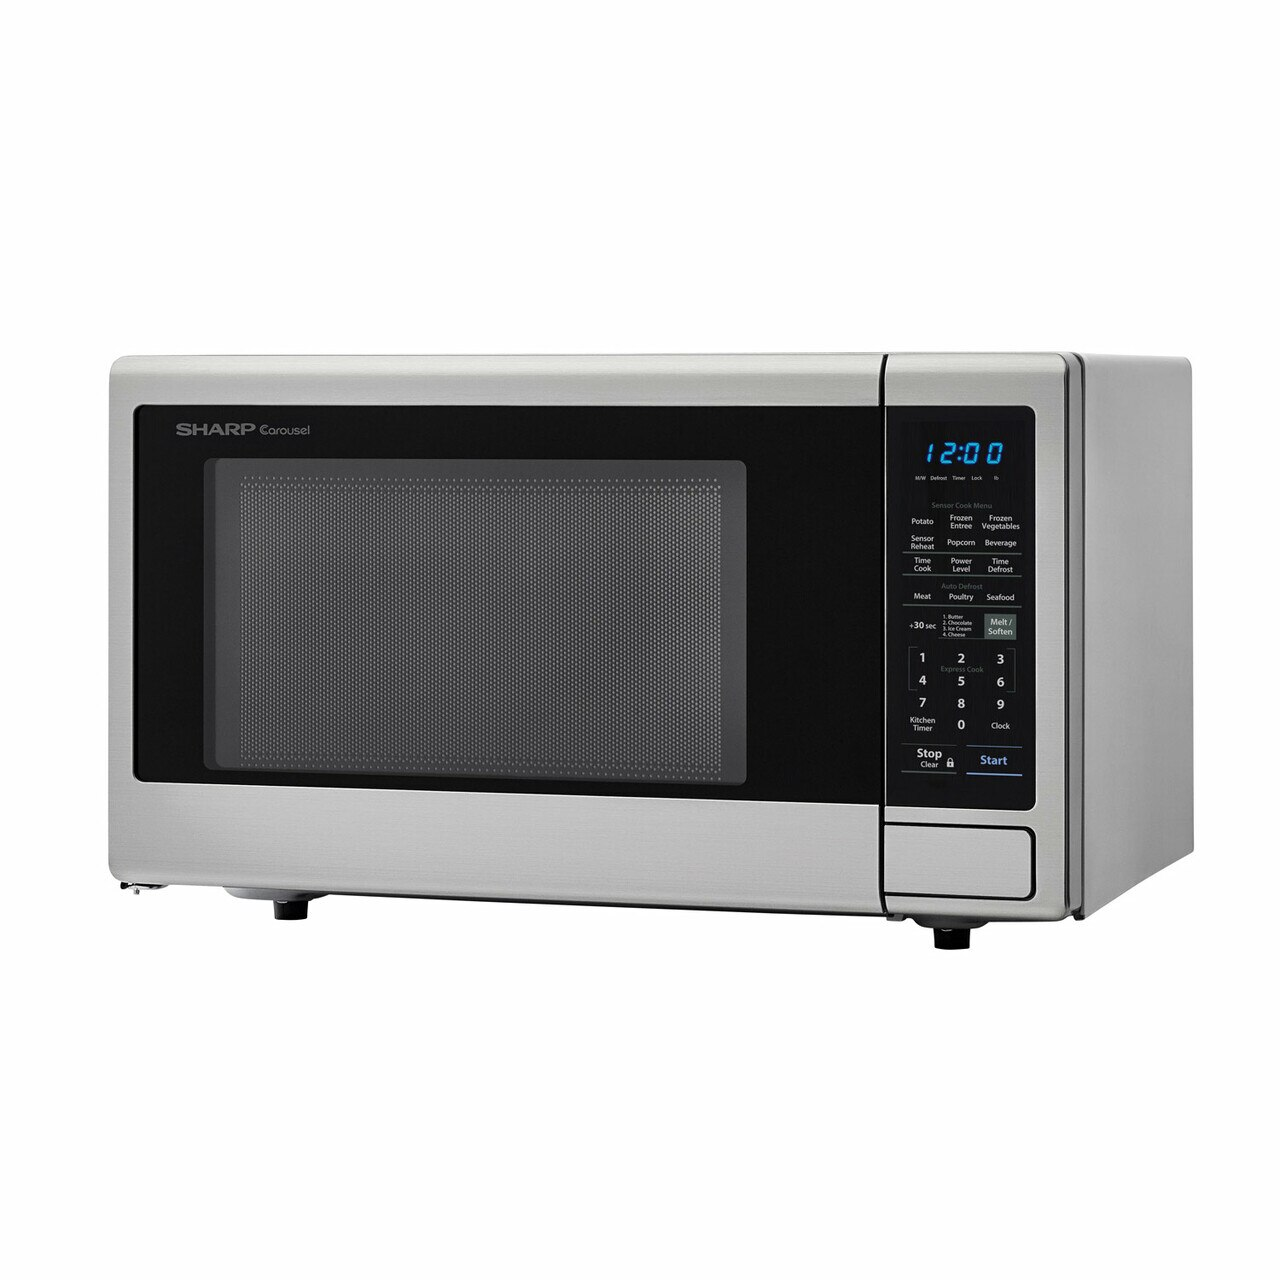 1.8 cu. ft. Sharp Stainless Steel Countertop Microwave (SMC1842CS) – left angle view